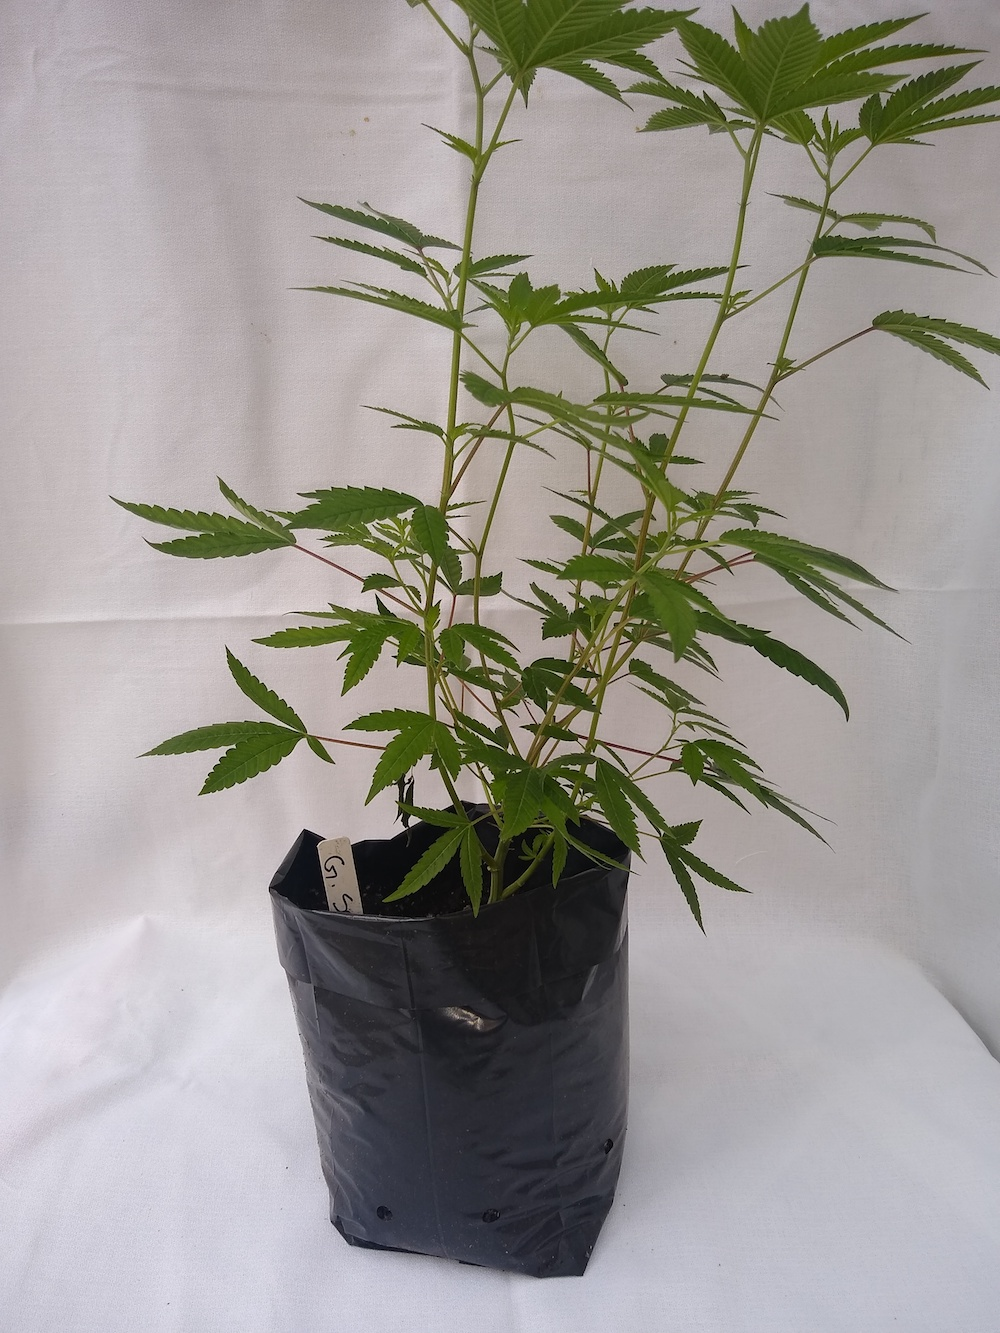 Gorilla Sap - Hybrid  Genetics - (Gorilla Glue x ?)  Pre-teen staged and pre-rooted in rock wool, planted in organic soil   Suggested retail  - $25 each